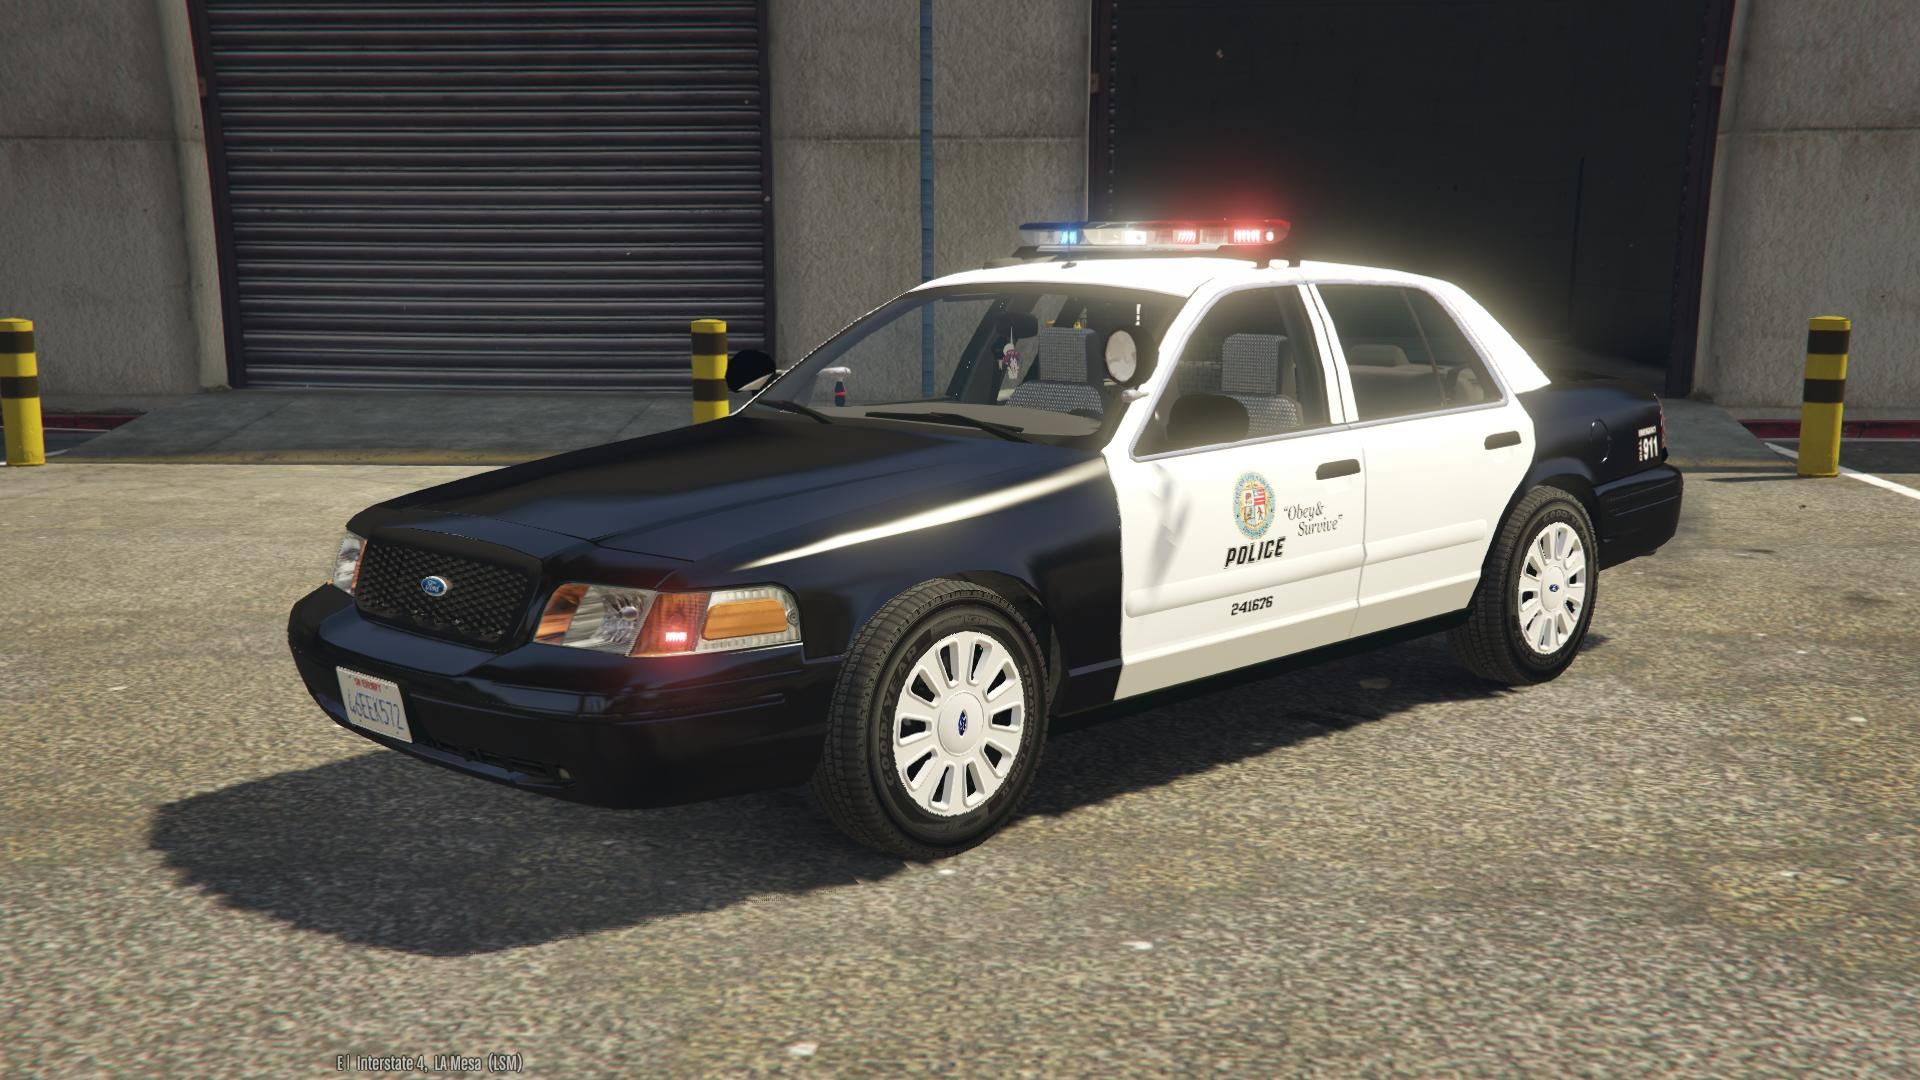 evl 2011 ford crown victoria police interceptor los santos emergency services pack gta5. Black Bedroom Furniture Sets. Home Design Ideas